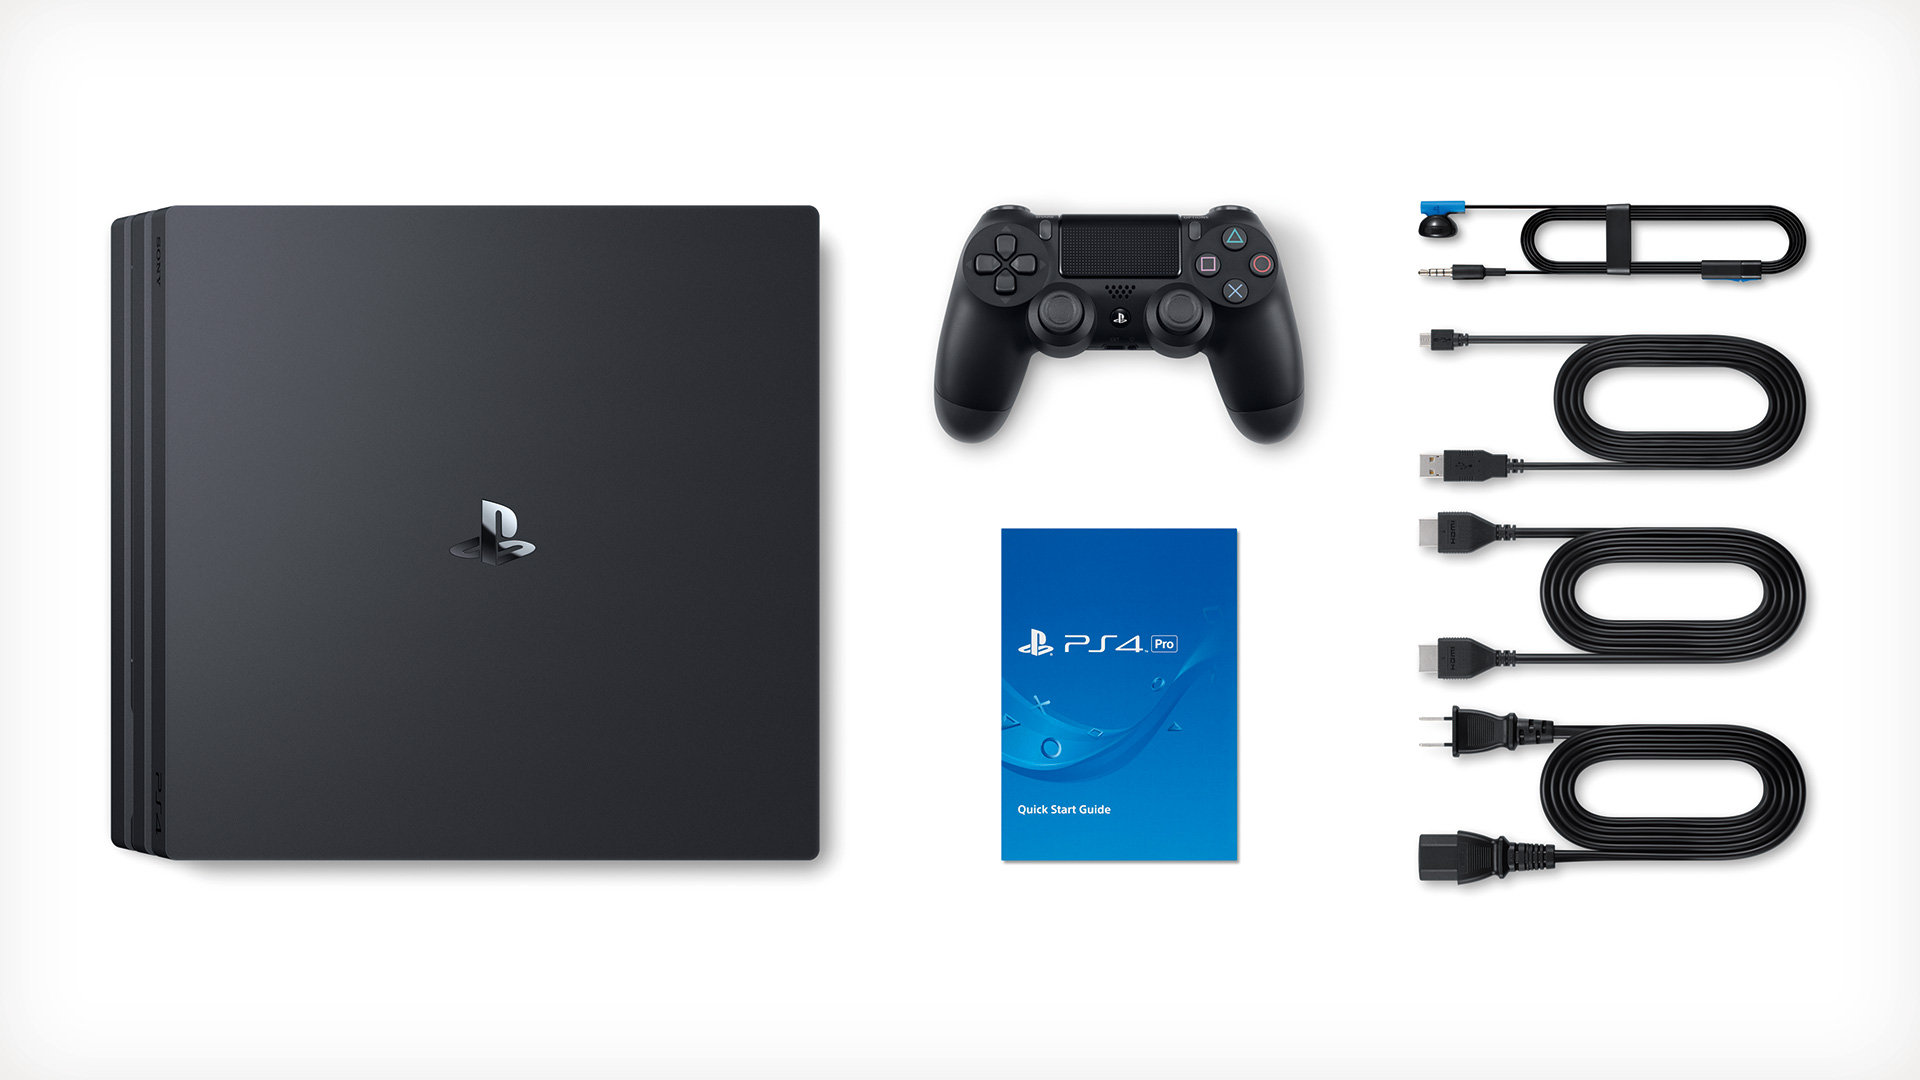 ps4 pro packed